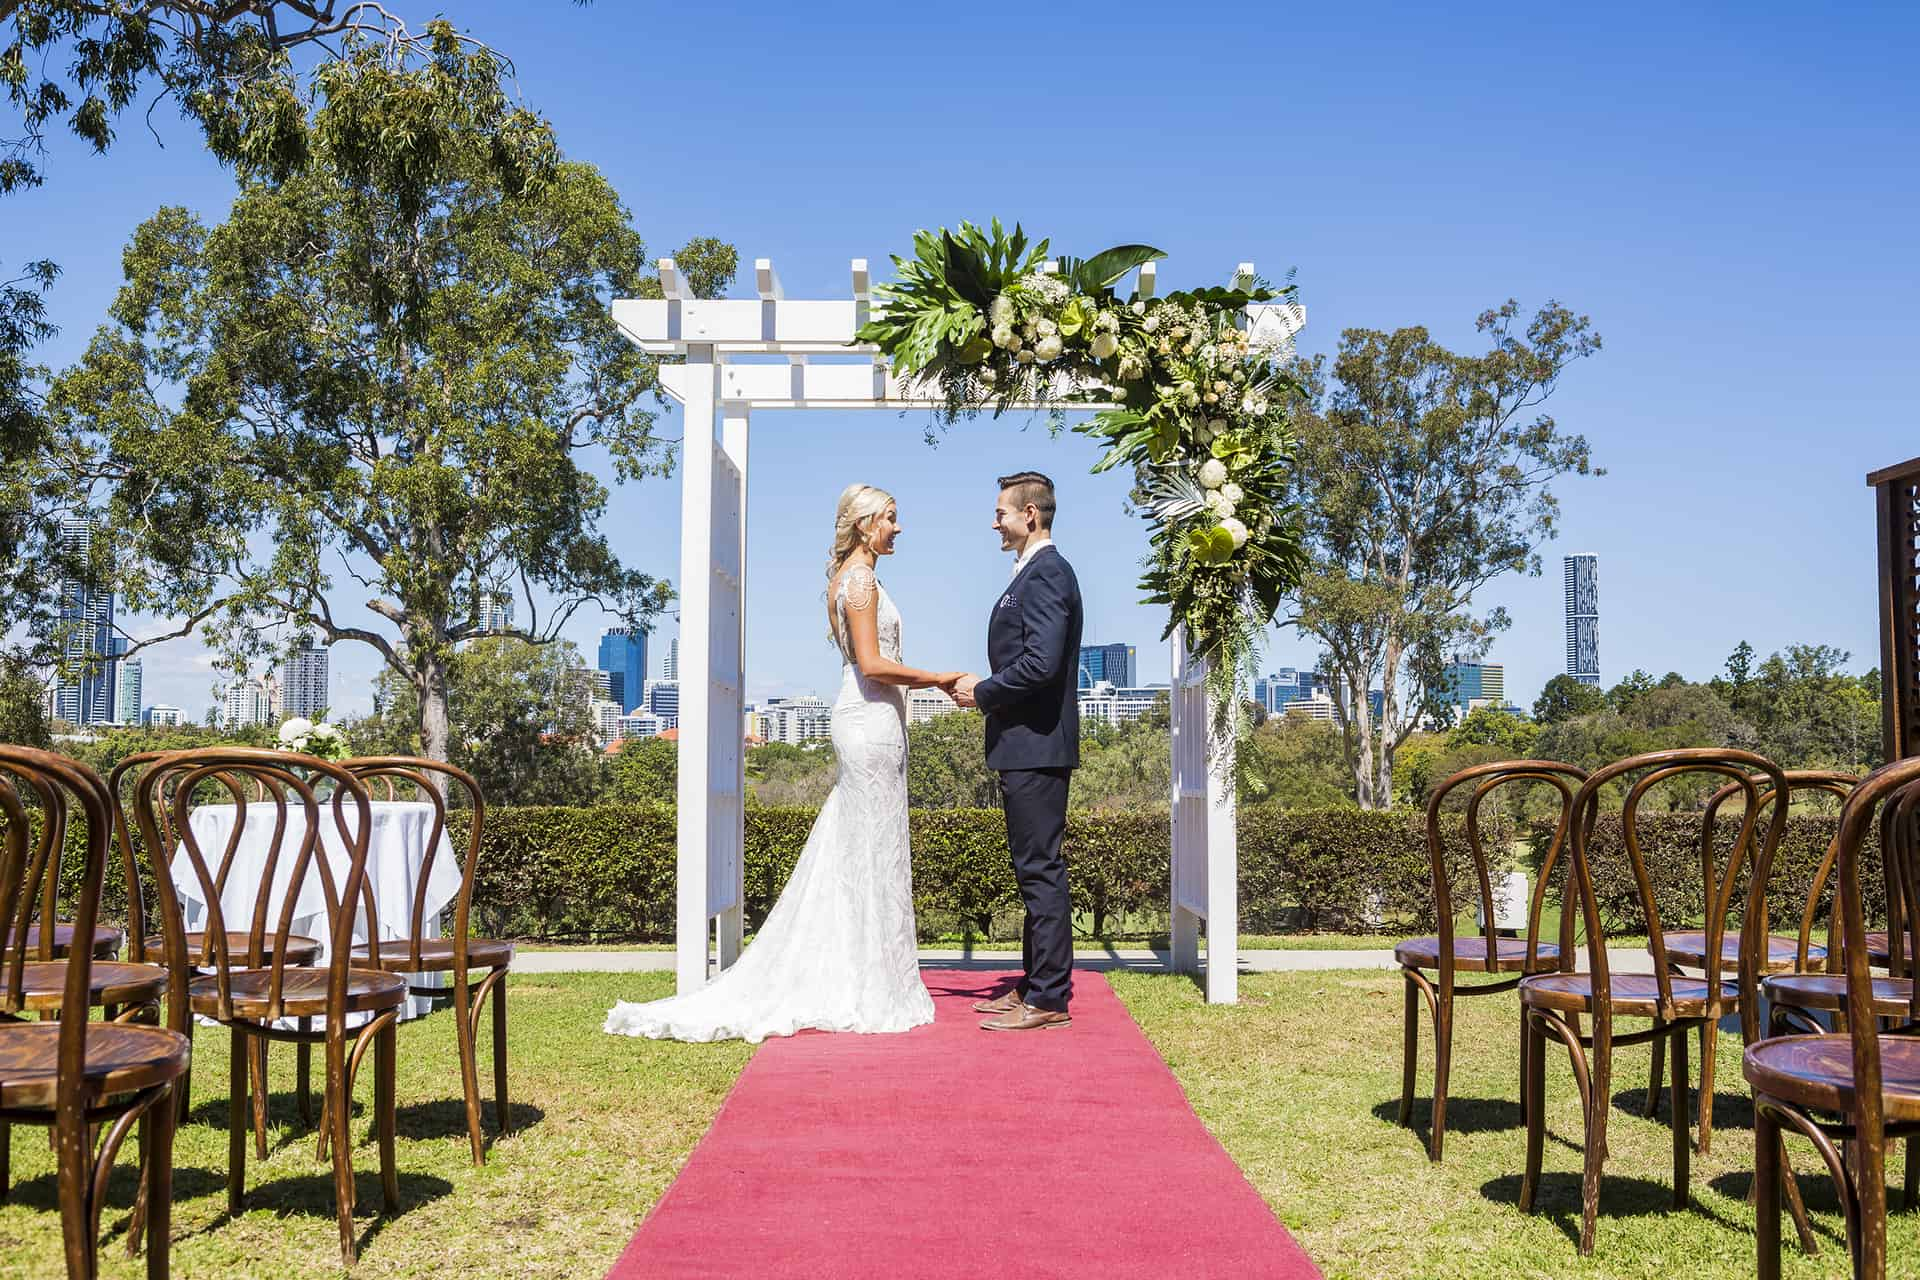 The Newest Brisbane Wedding Ceremony Space With Spectacular Views!